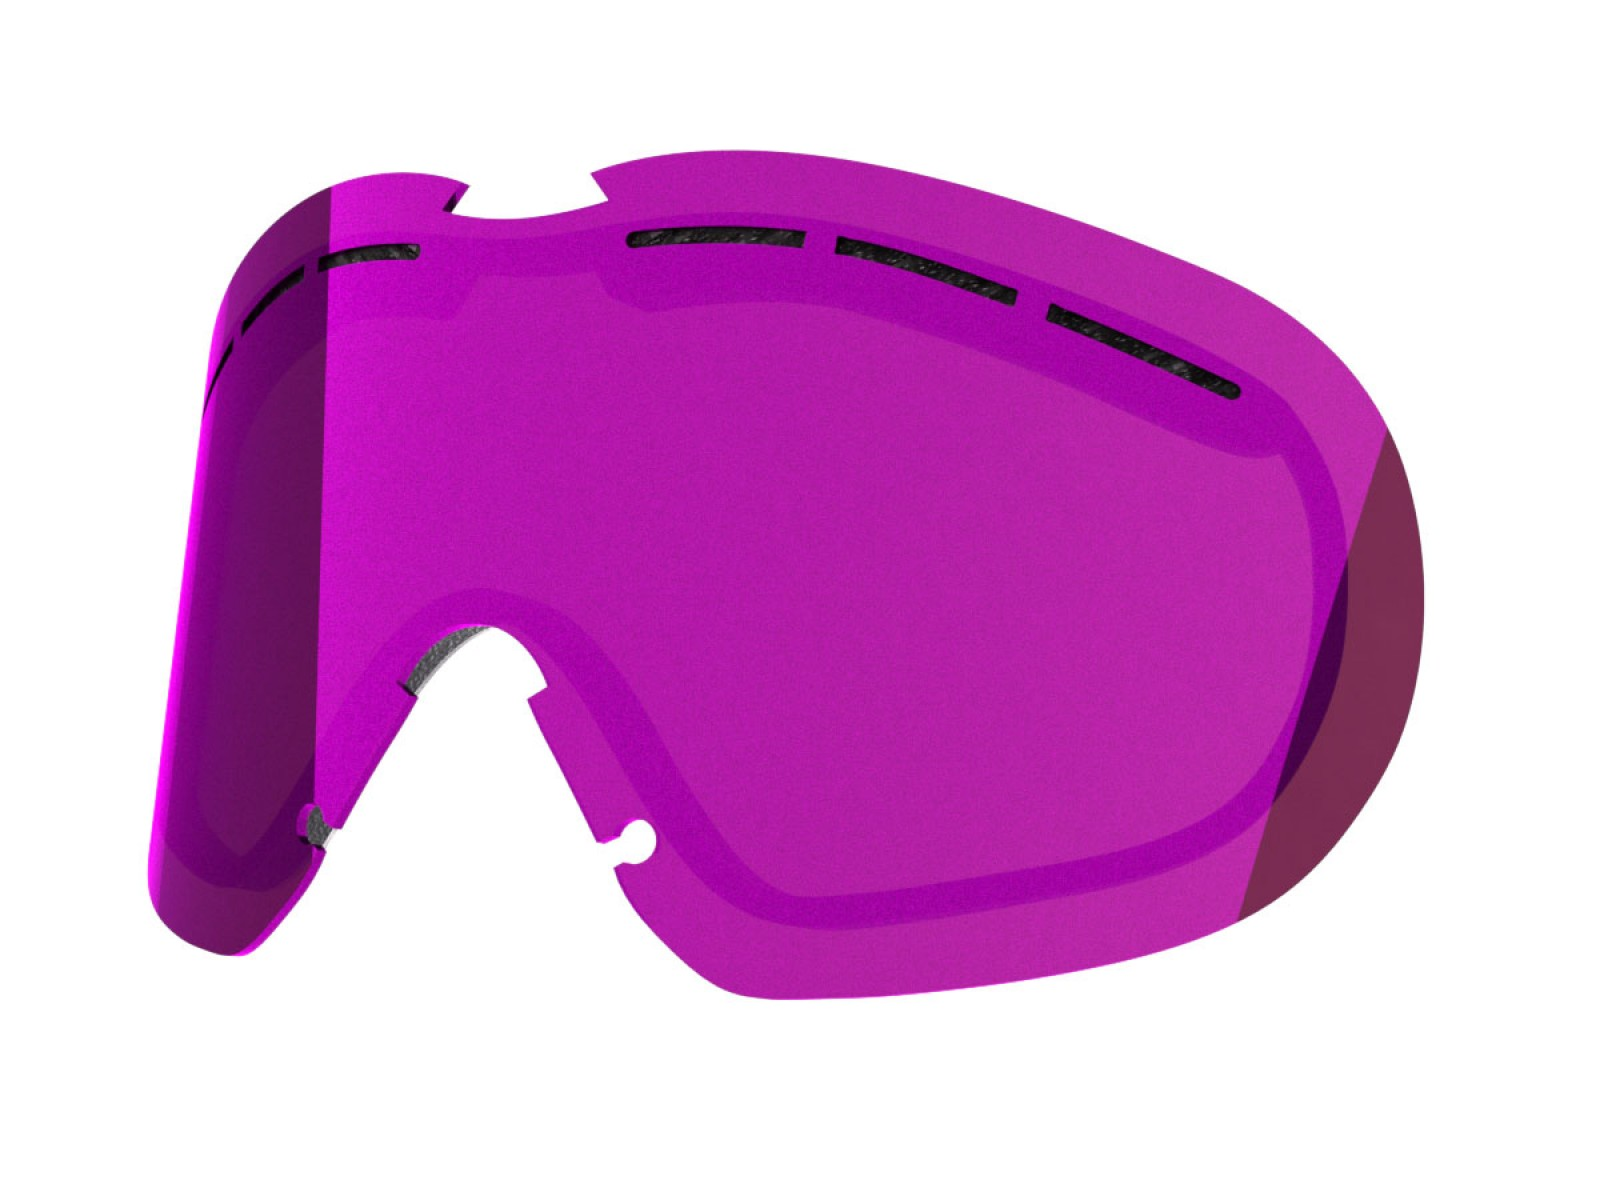 VIOLET MCI LENS FOR FLAT SNOW GOGGLE